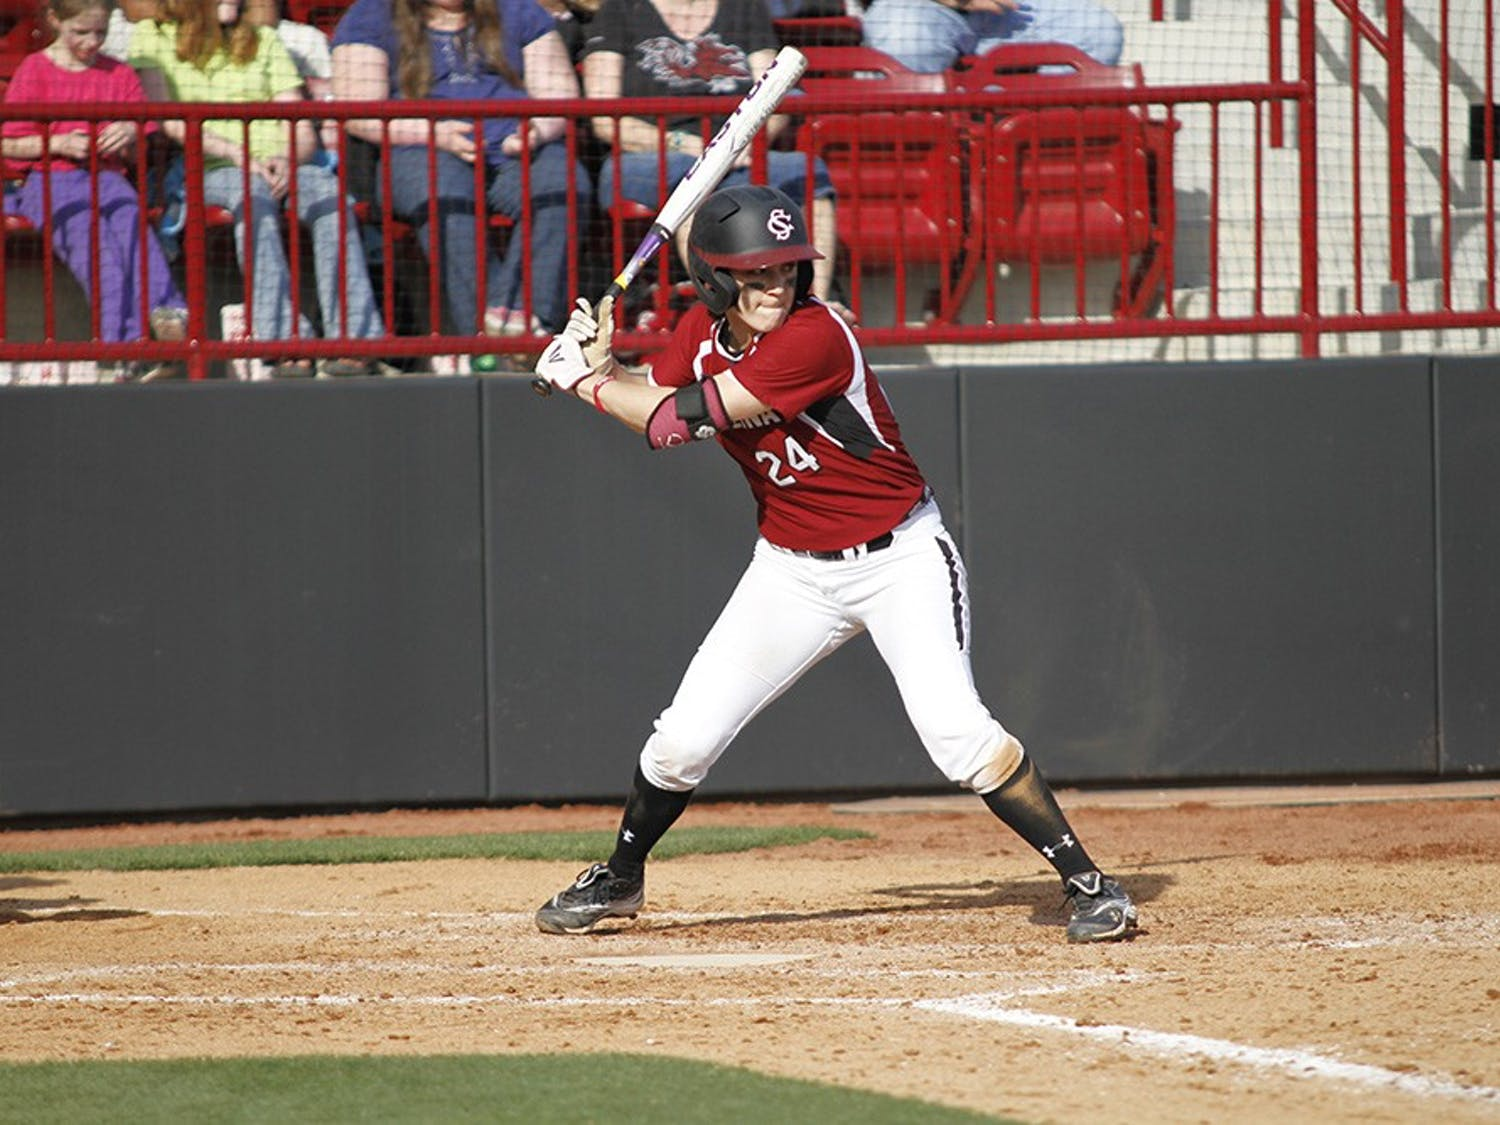 Junior Dana Hathorn reached base in all four of her at-bats in Sunday's 5-4 loss to the Wildcats. She was hit by a pitch once.